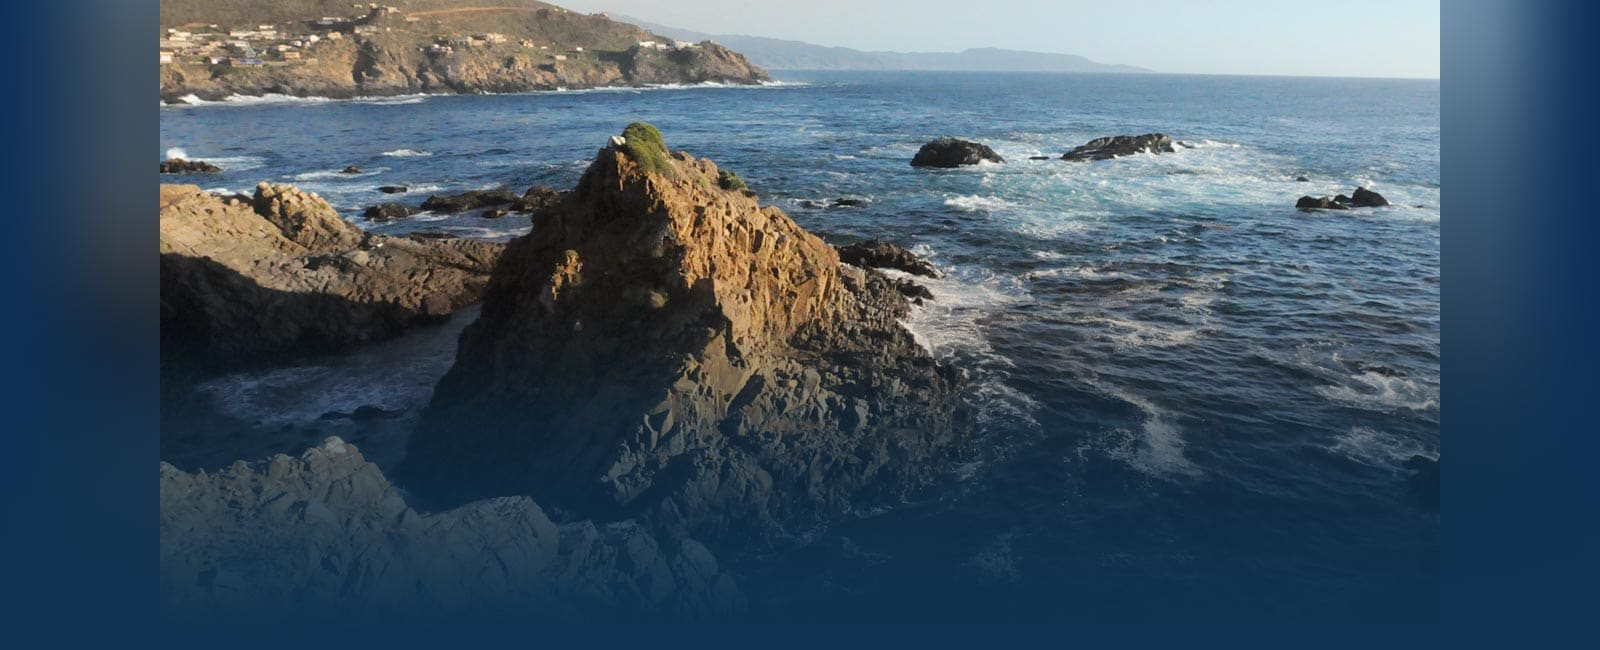 Cal Coastals Background 3